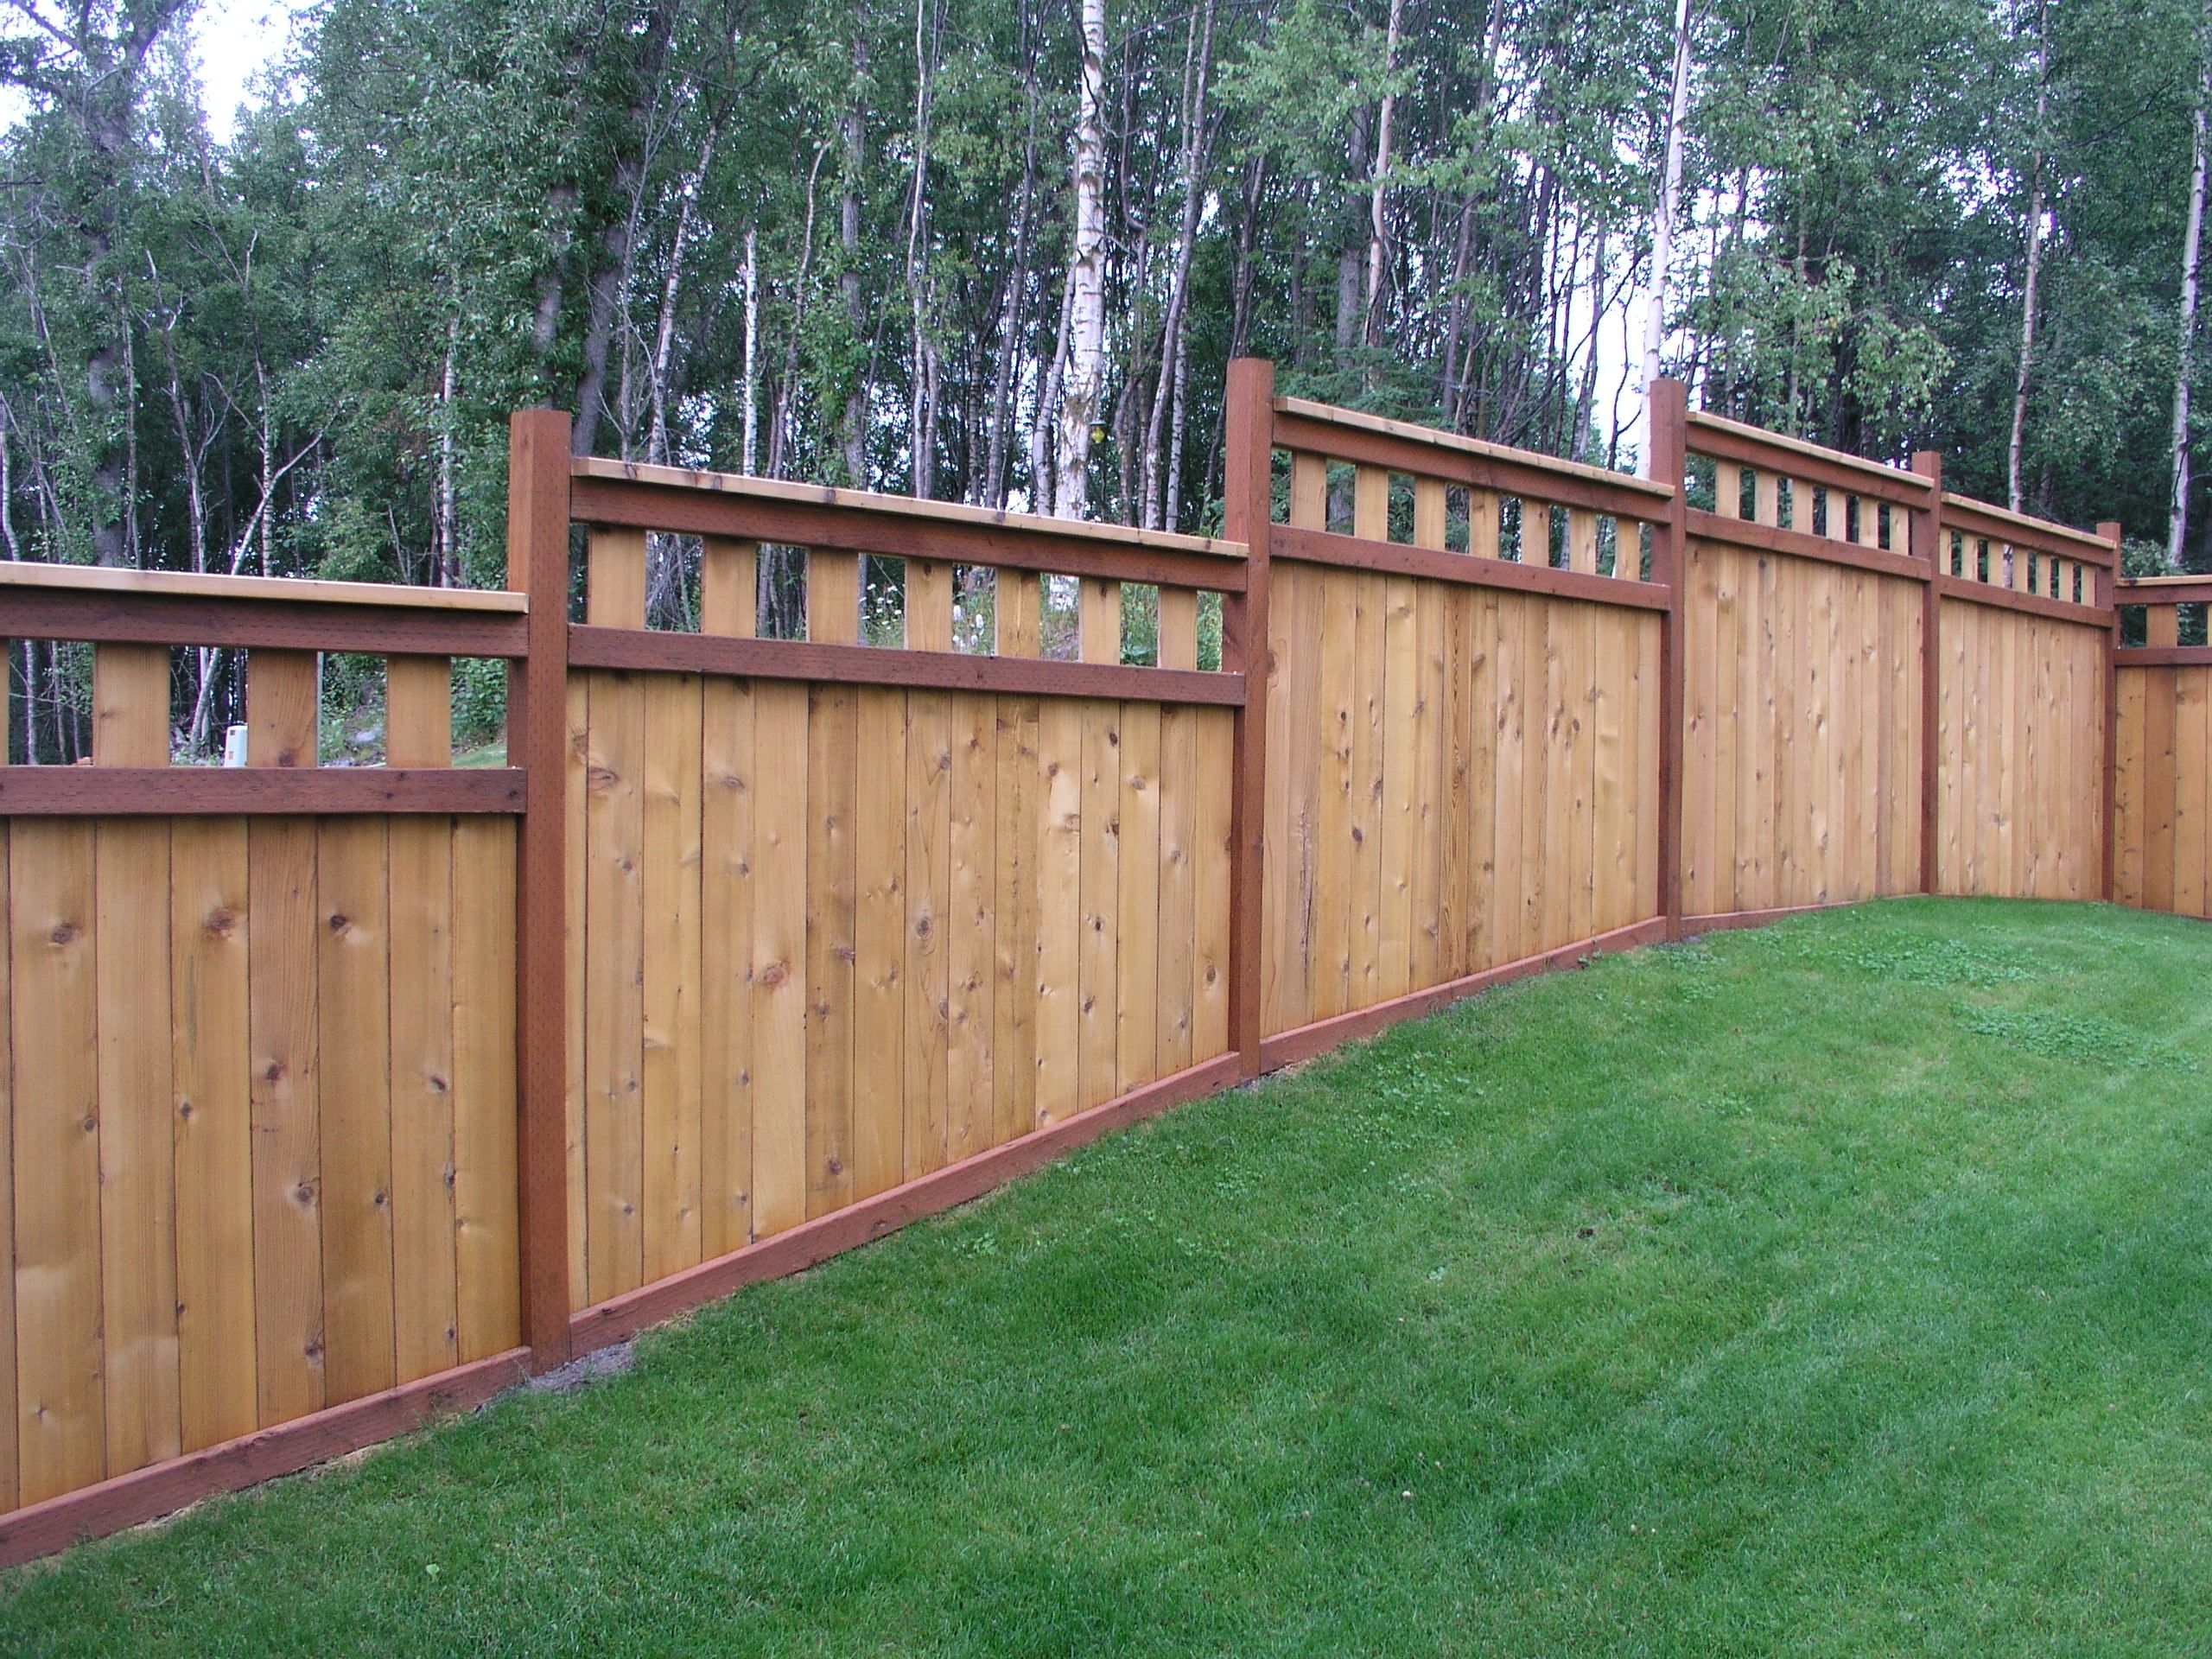 Aaa Fence Inc Privacy Fence Landscaping Privacy Fence Designs Fence Design